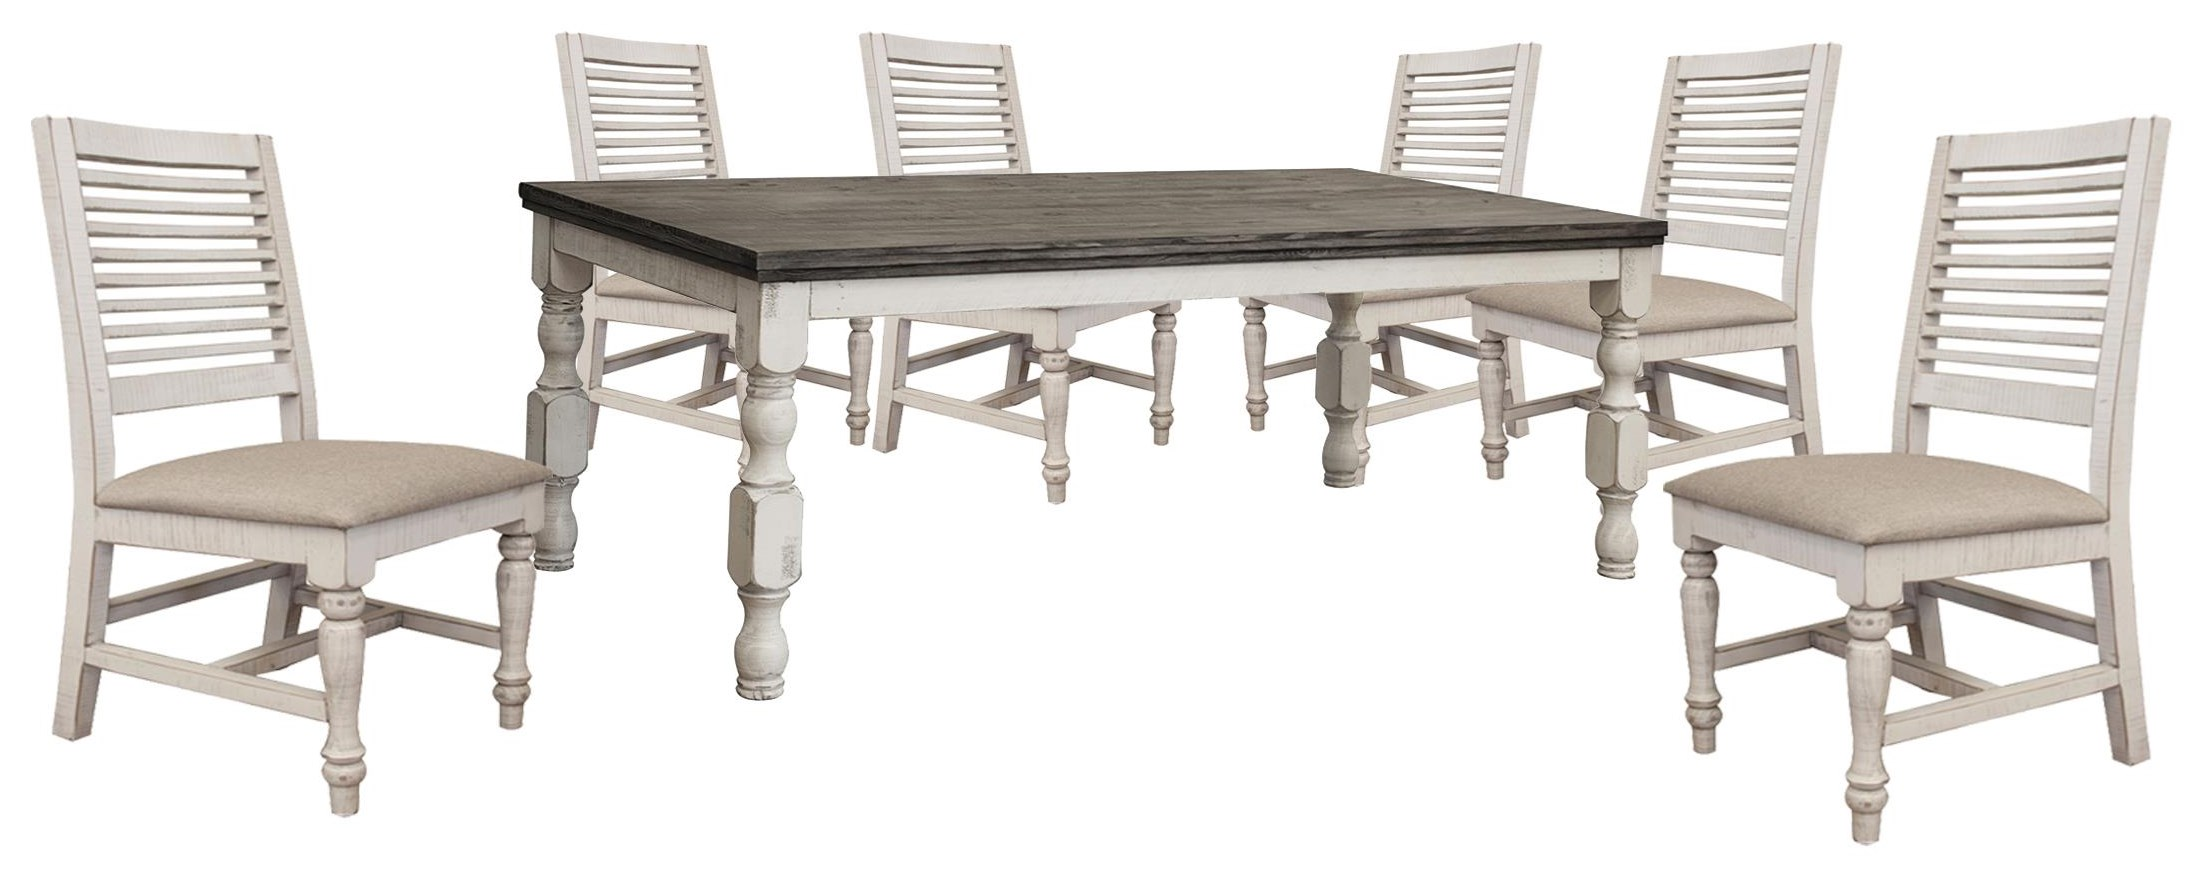 Stone Dining Table and 6 Ladderback Chair by International Furniture Direct at Johnny Janosik